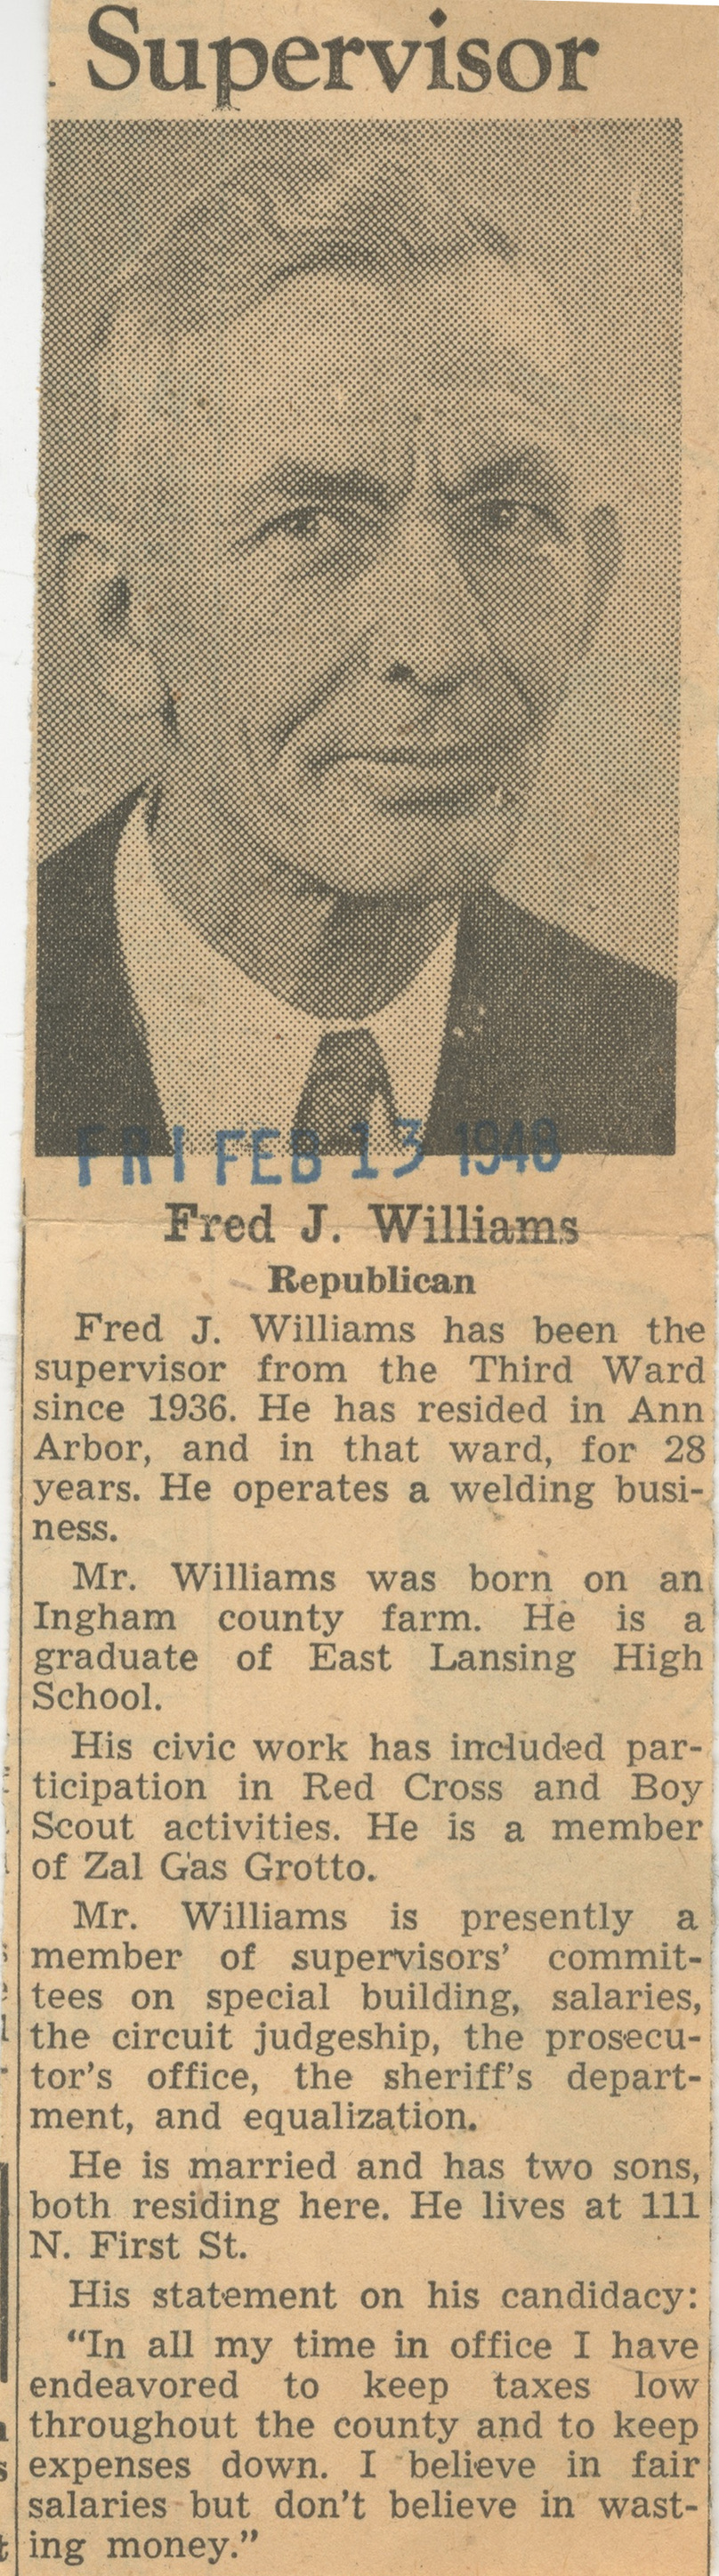 Supervisor - Fred J. Williams Republican image